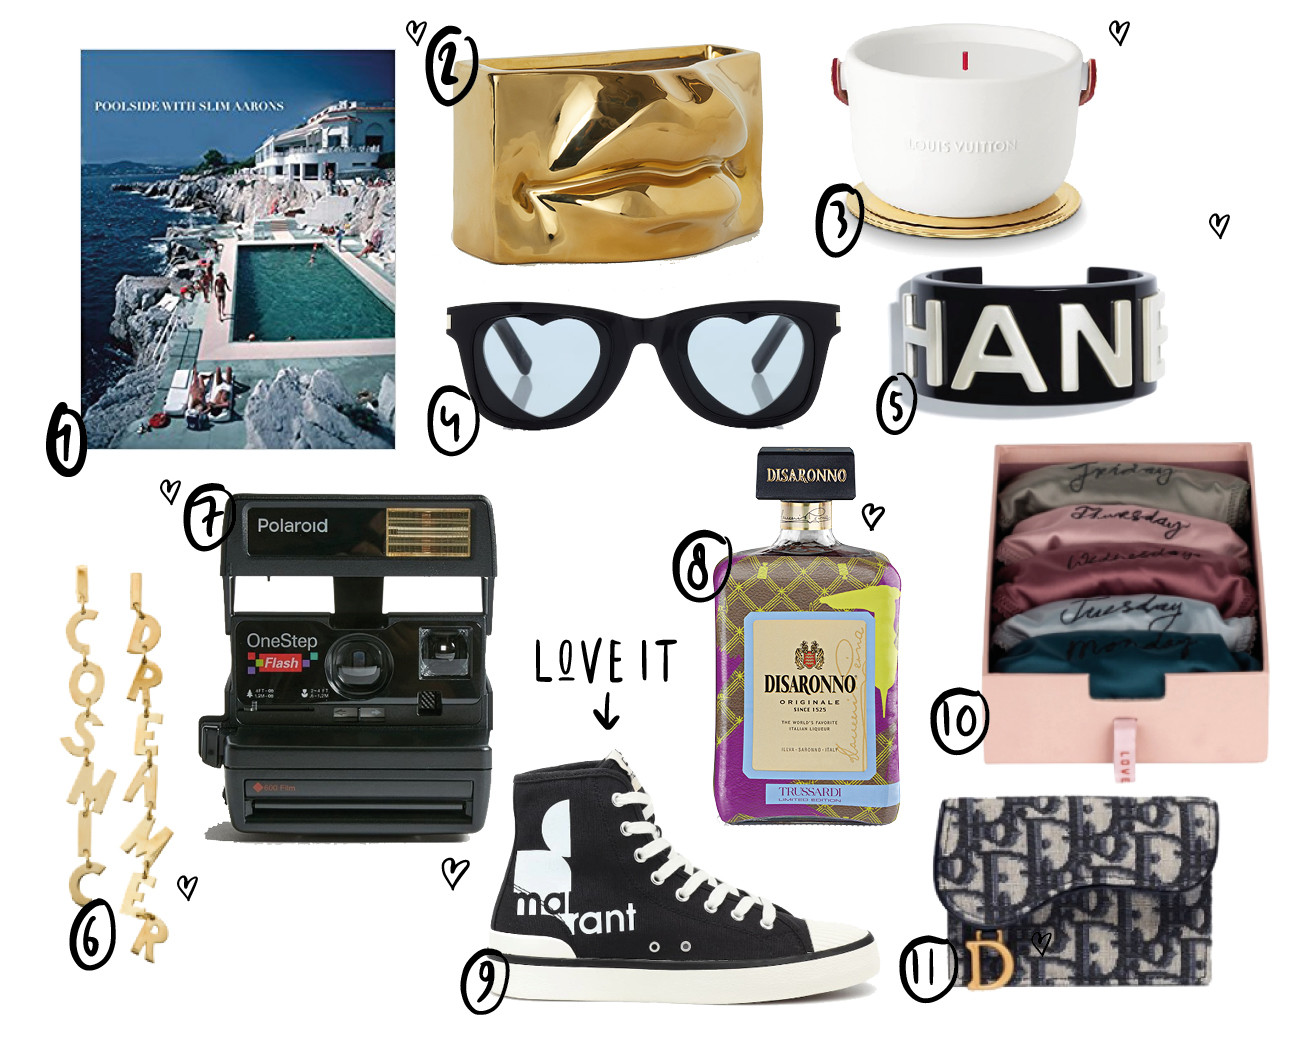 shopping items voor valentijnsdag Louis Vuitton Isabel Marant Chanel armband geurkaars H&M